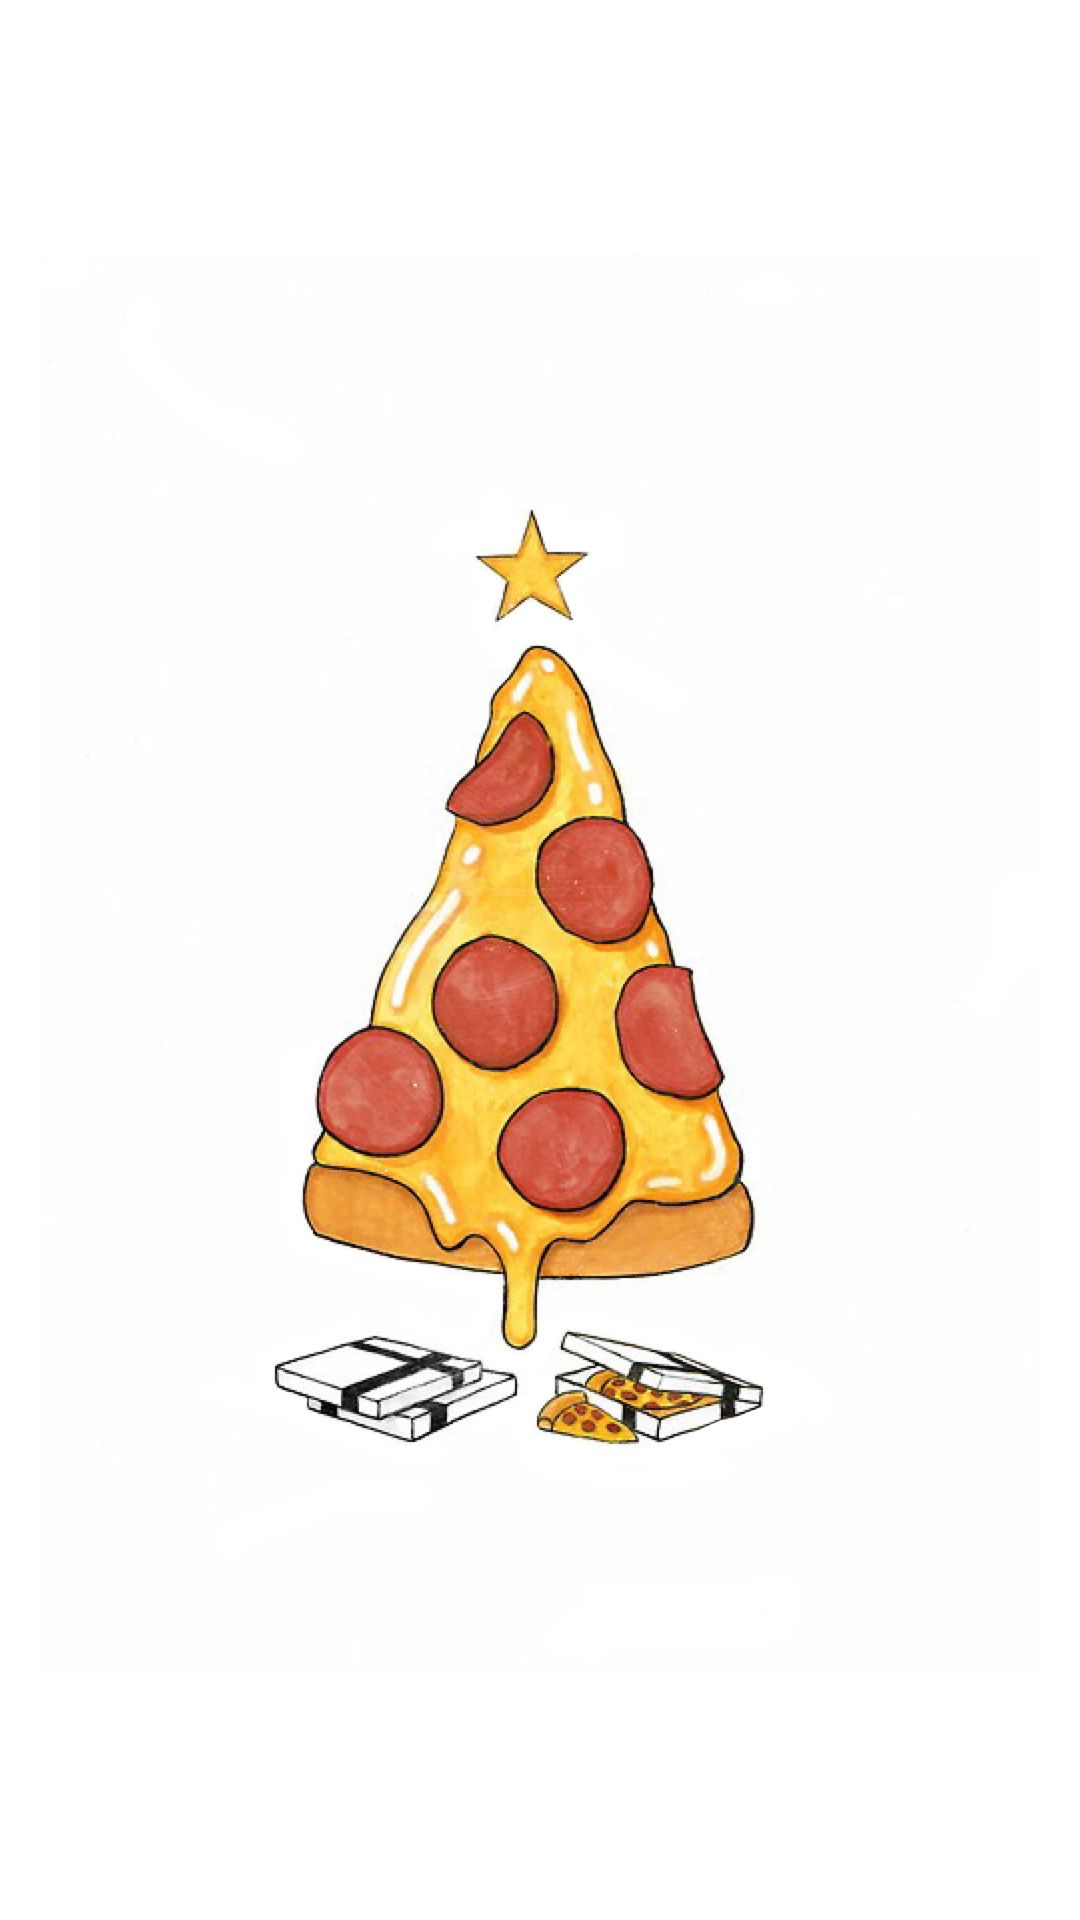 Pizza Christmas Tree Presents Iphone 6 Hd Wallpaper Fond